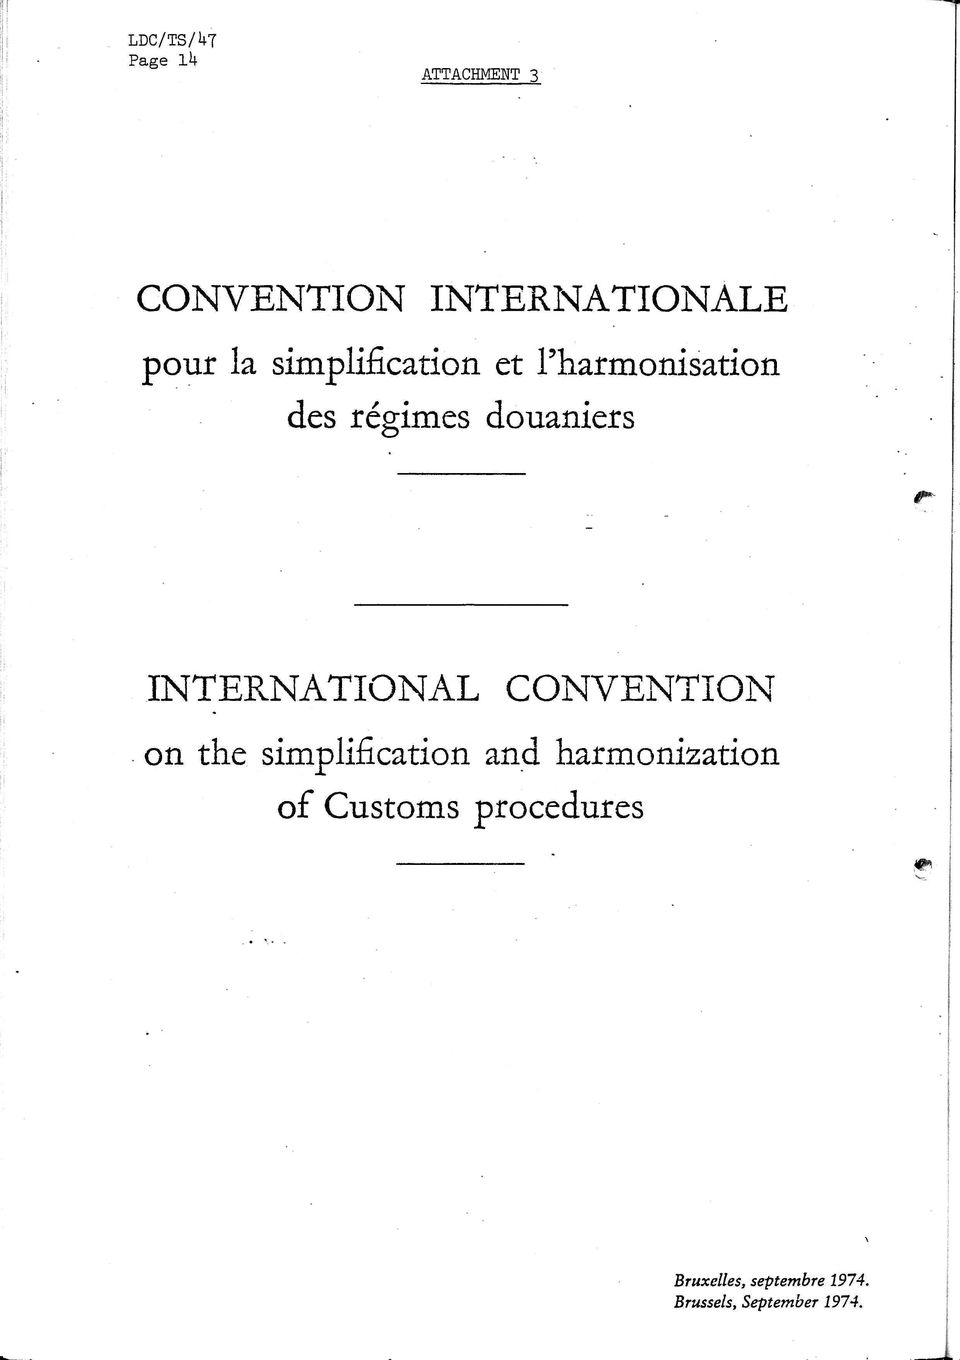 INTERNATIONAL CONVENTION on the simplification and